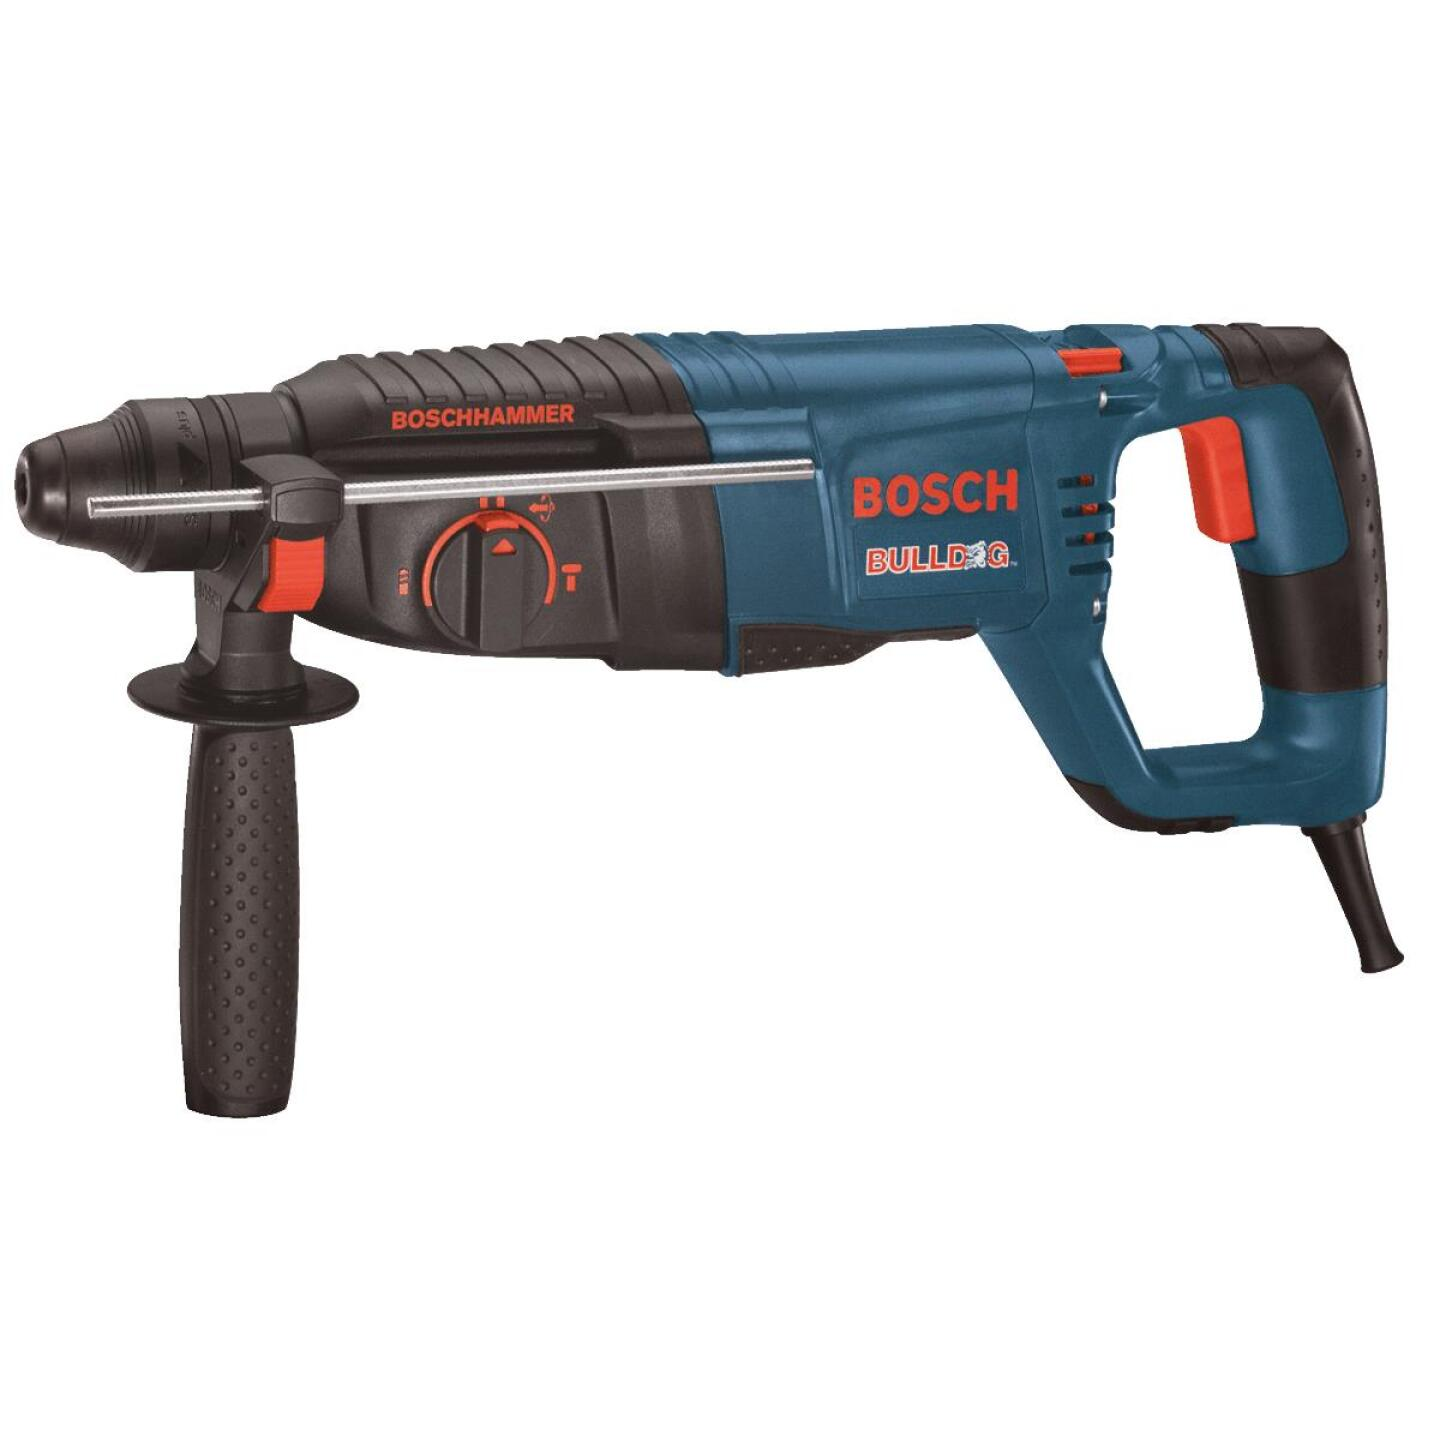 Bosch BULLDOG Xtreme 1 In. SDS-Plus 7.5-Amp Electric Rotary Hammer Drill Image 1